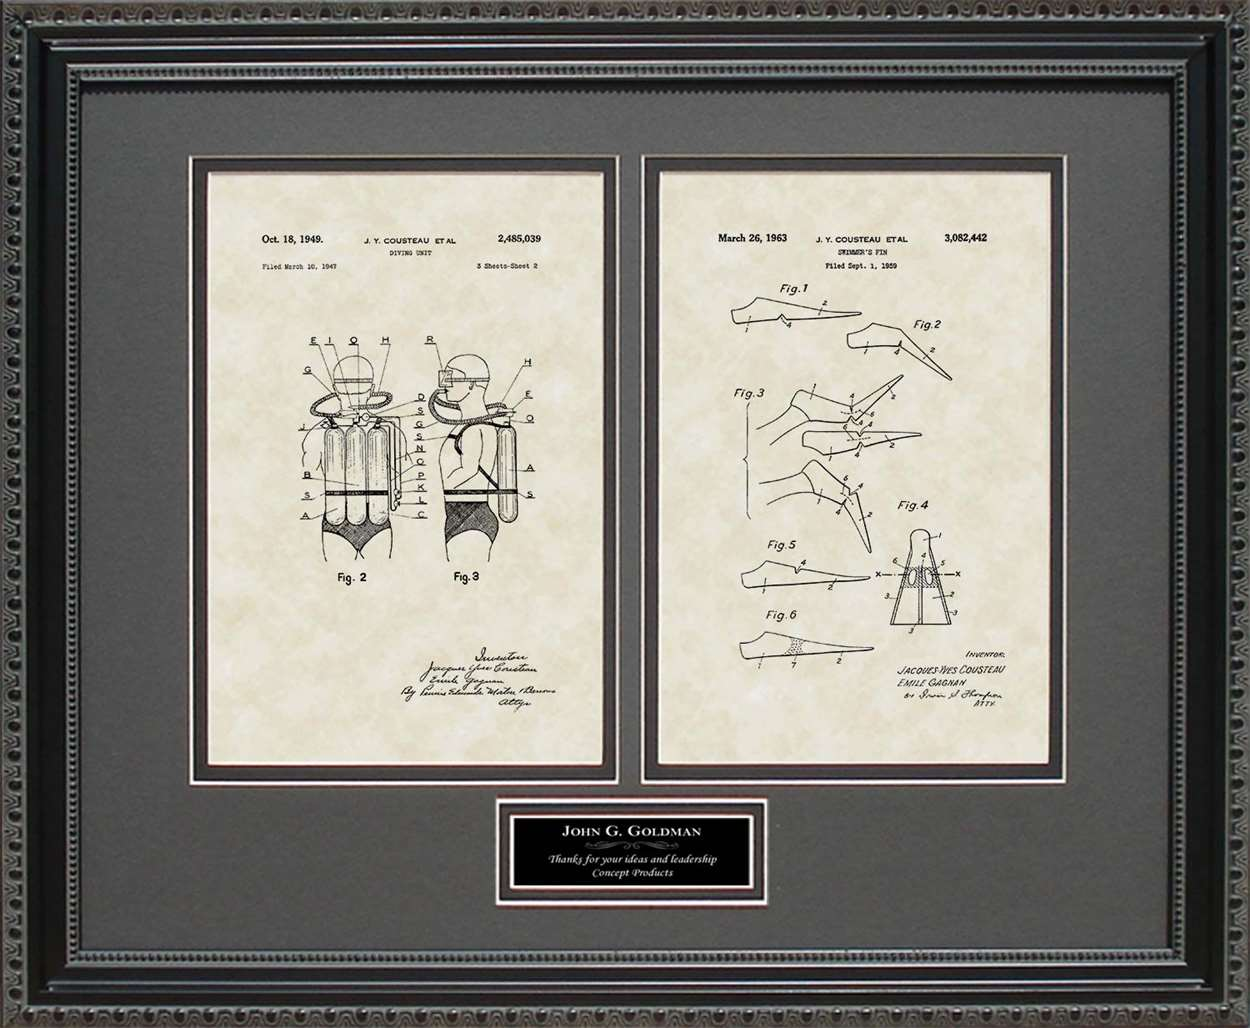 Personalized Scuba Equipment & Scuba Fins Patents, 16x20